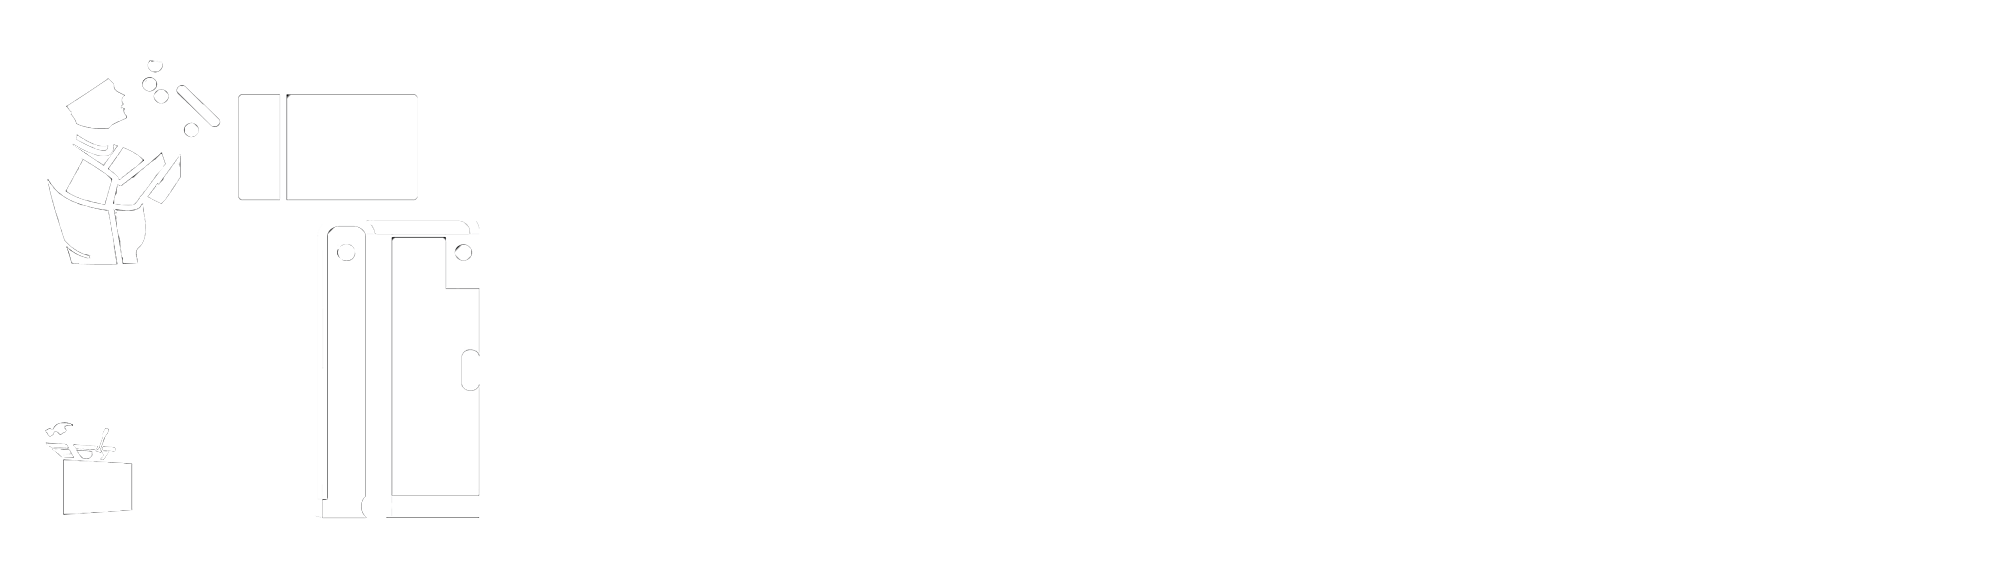 Pronto Environmental Inc. Mechanical Contractor Logo